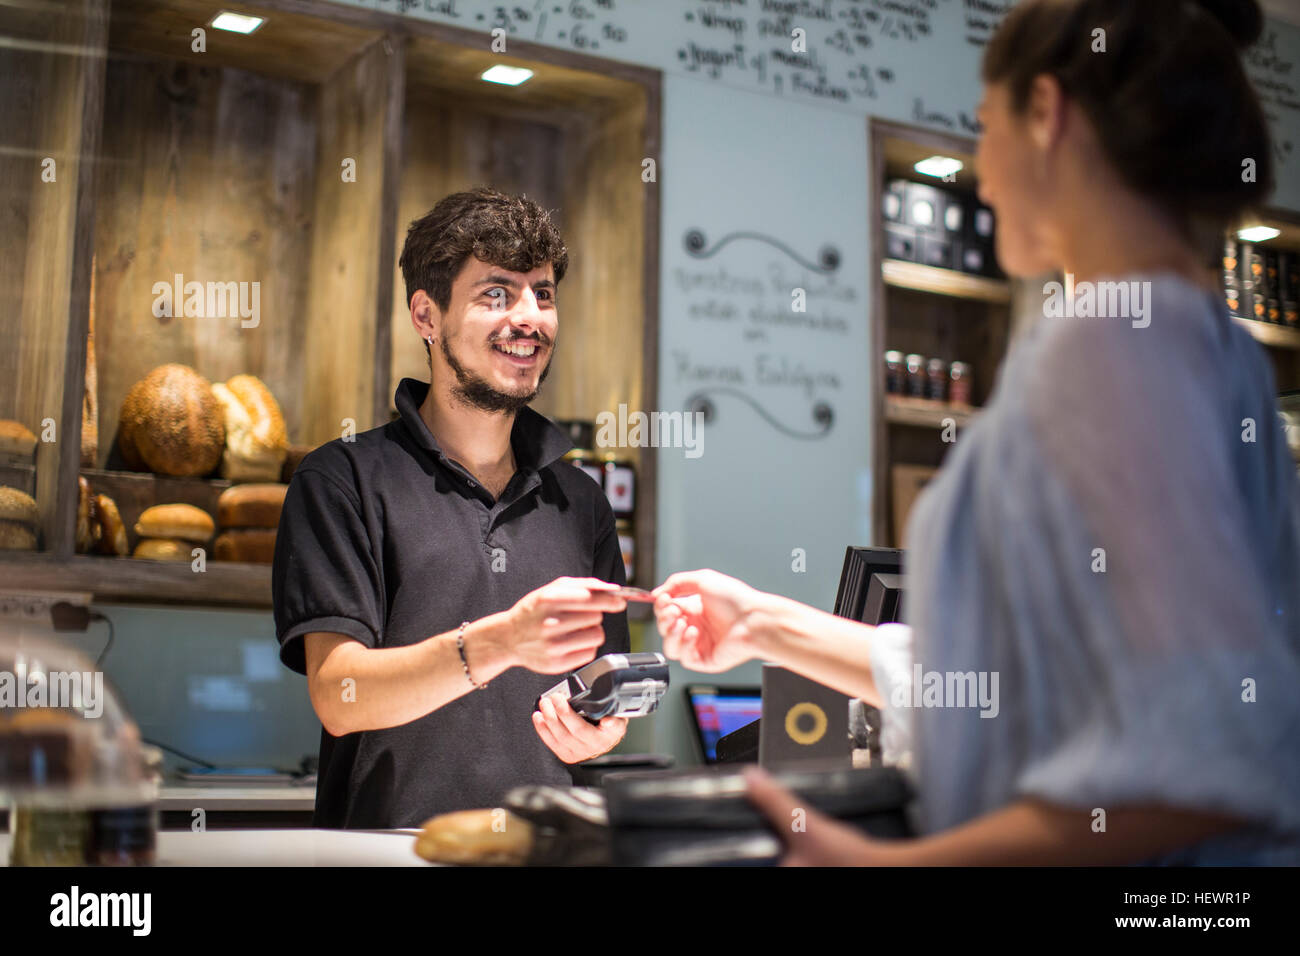 Barista handing credit card to female customer at cafe counter - Stock Image